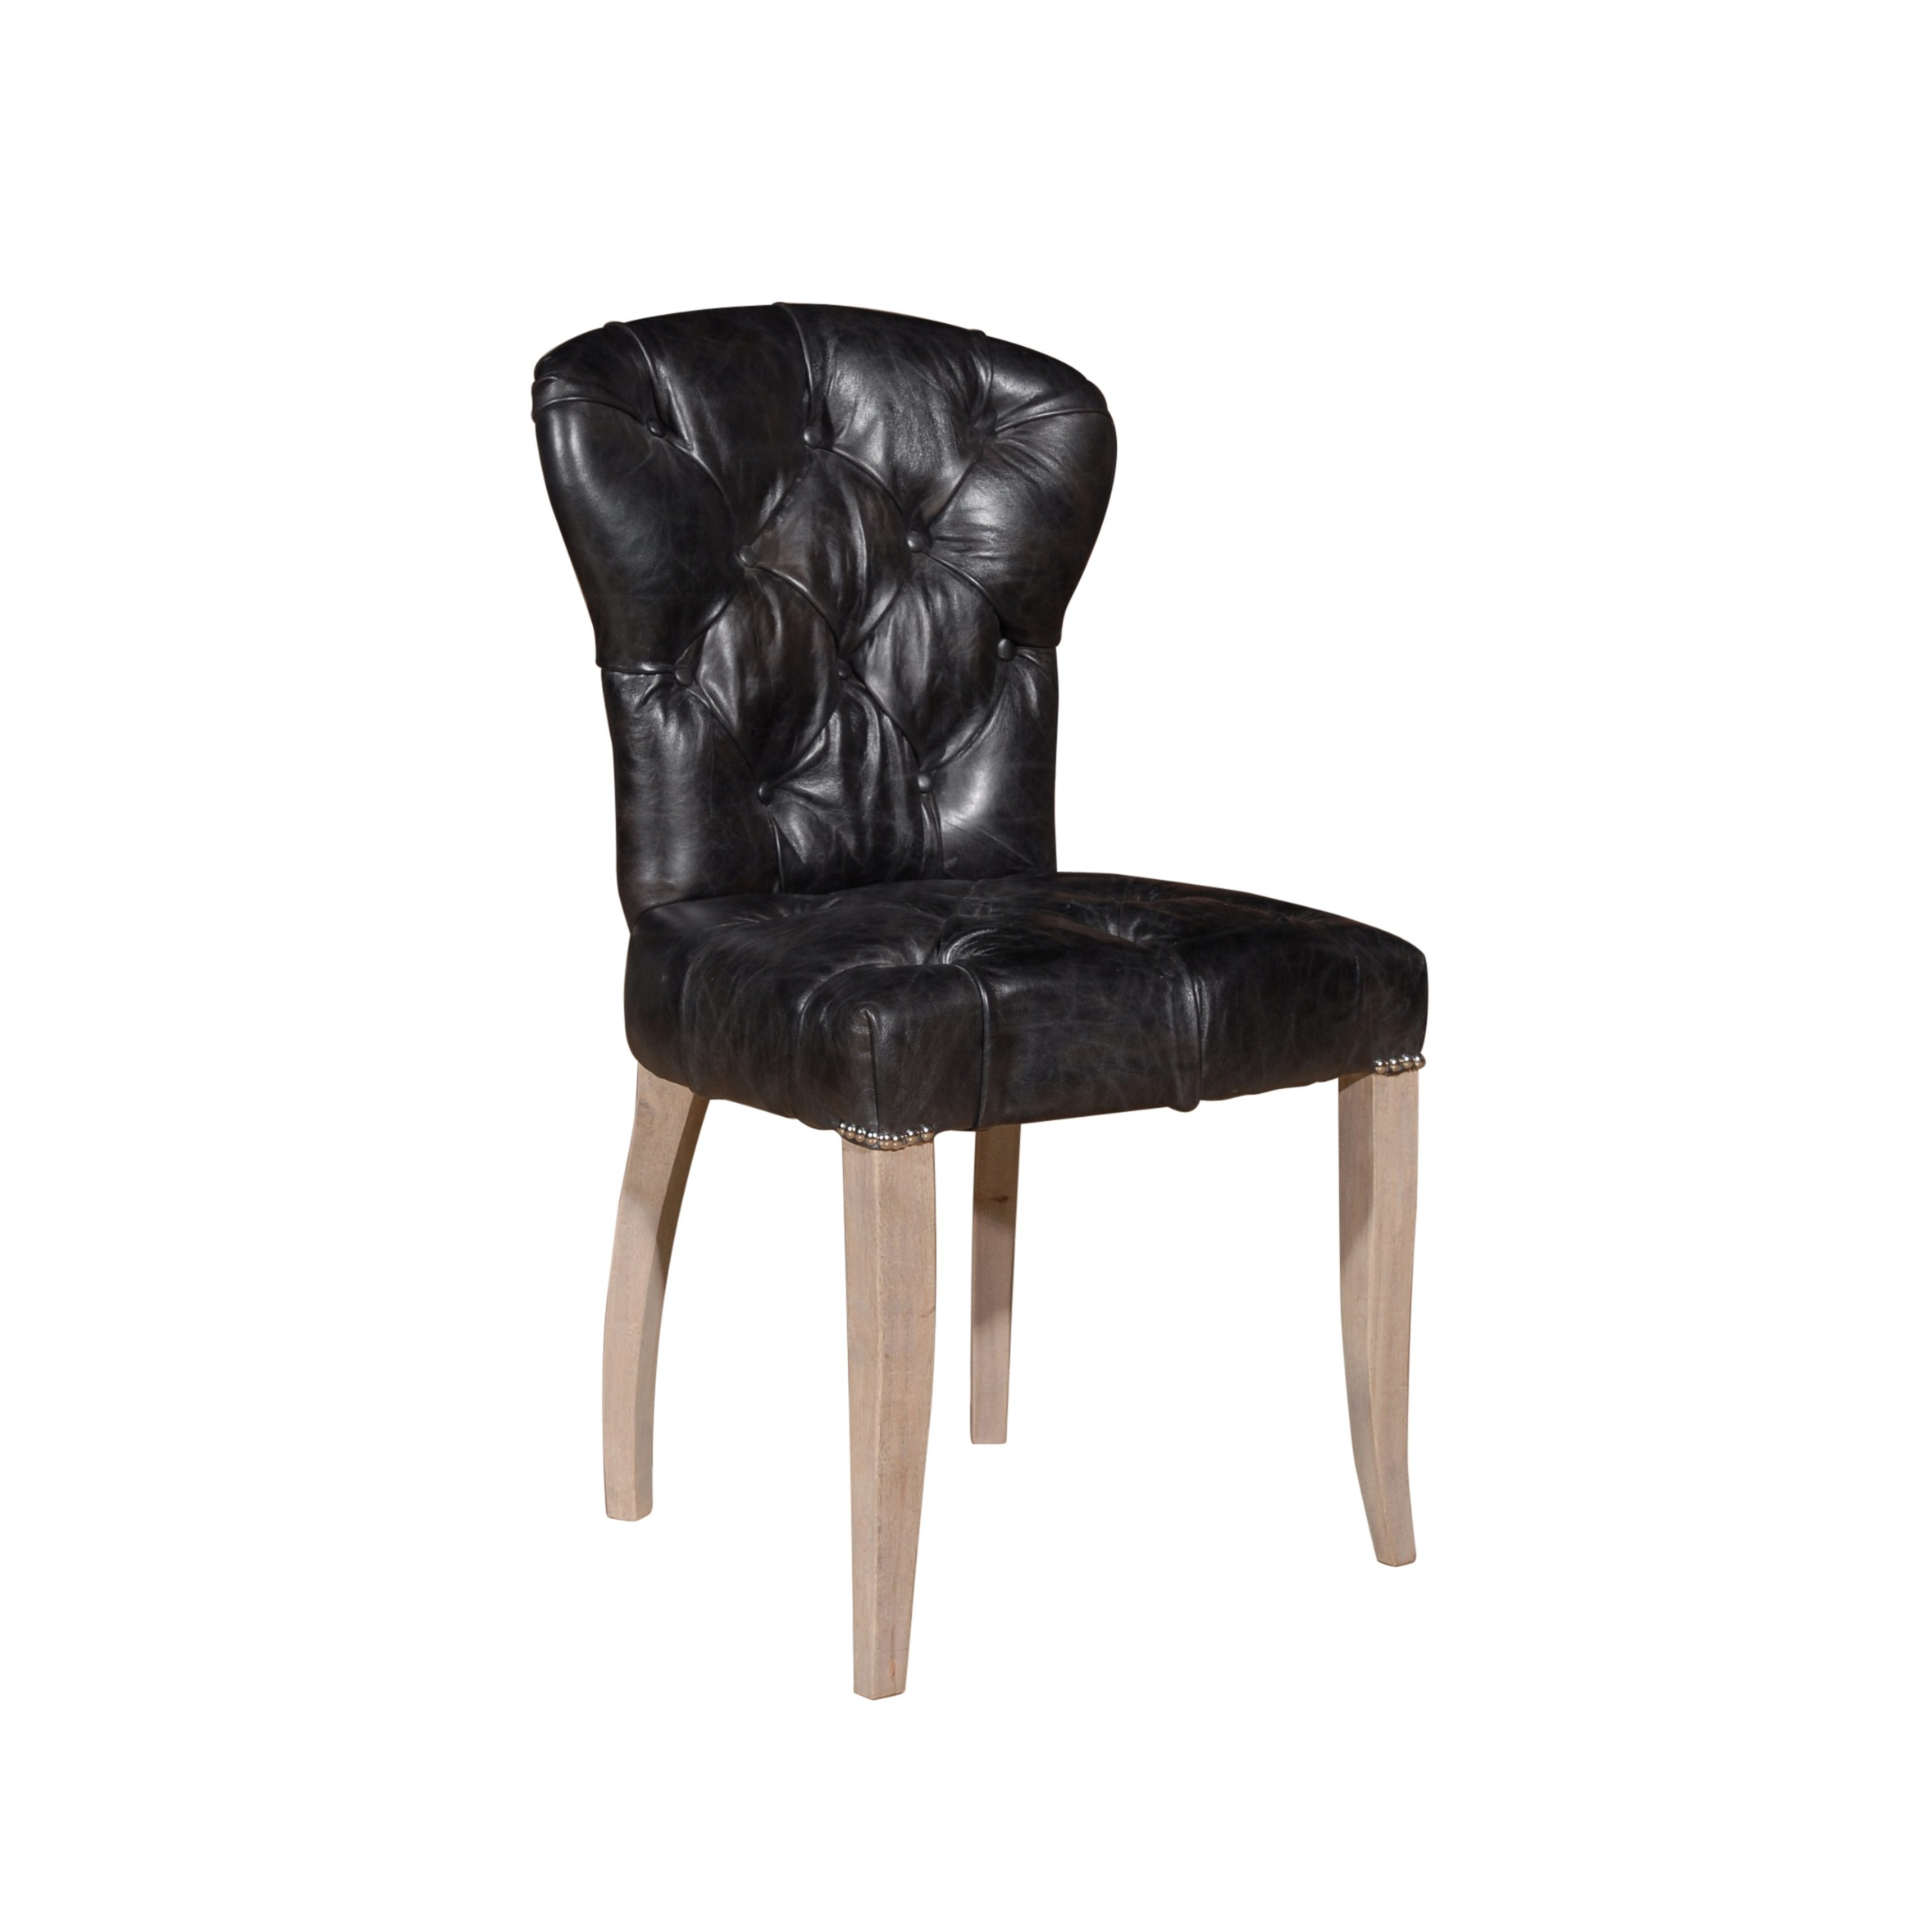 by b chair desk chairs from beacon architonic bark product en